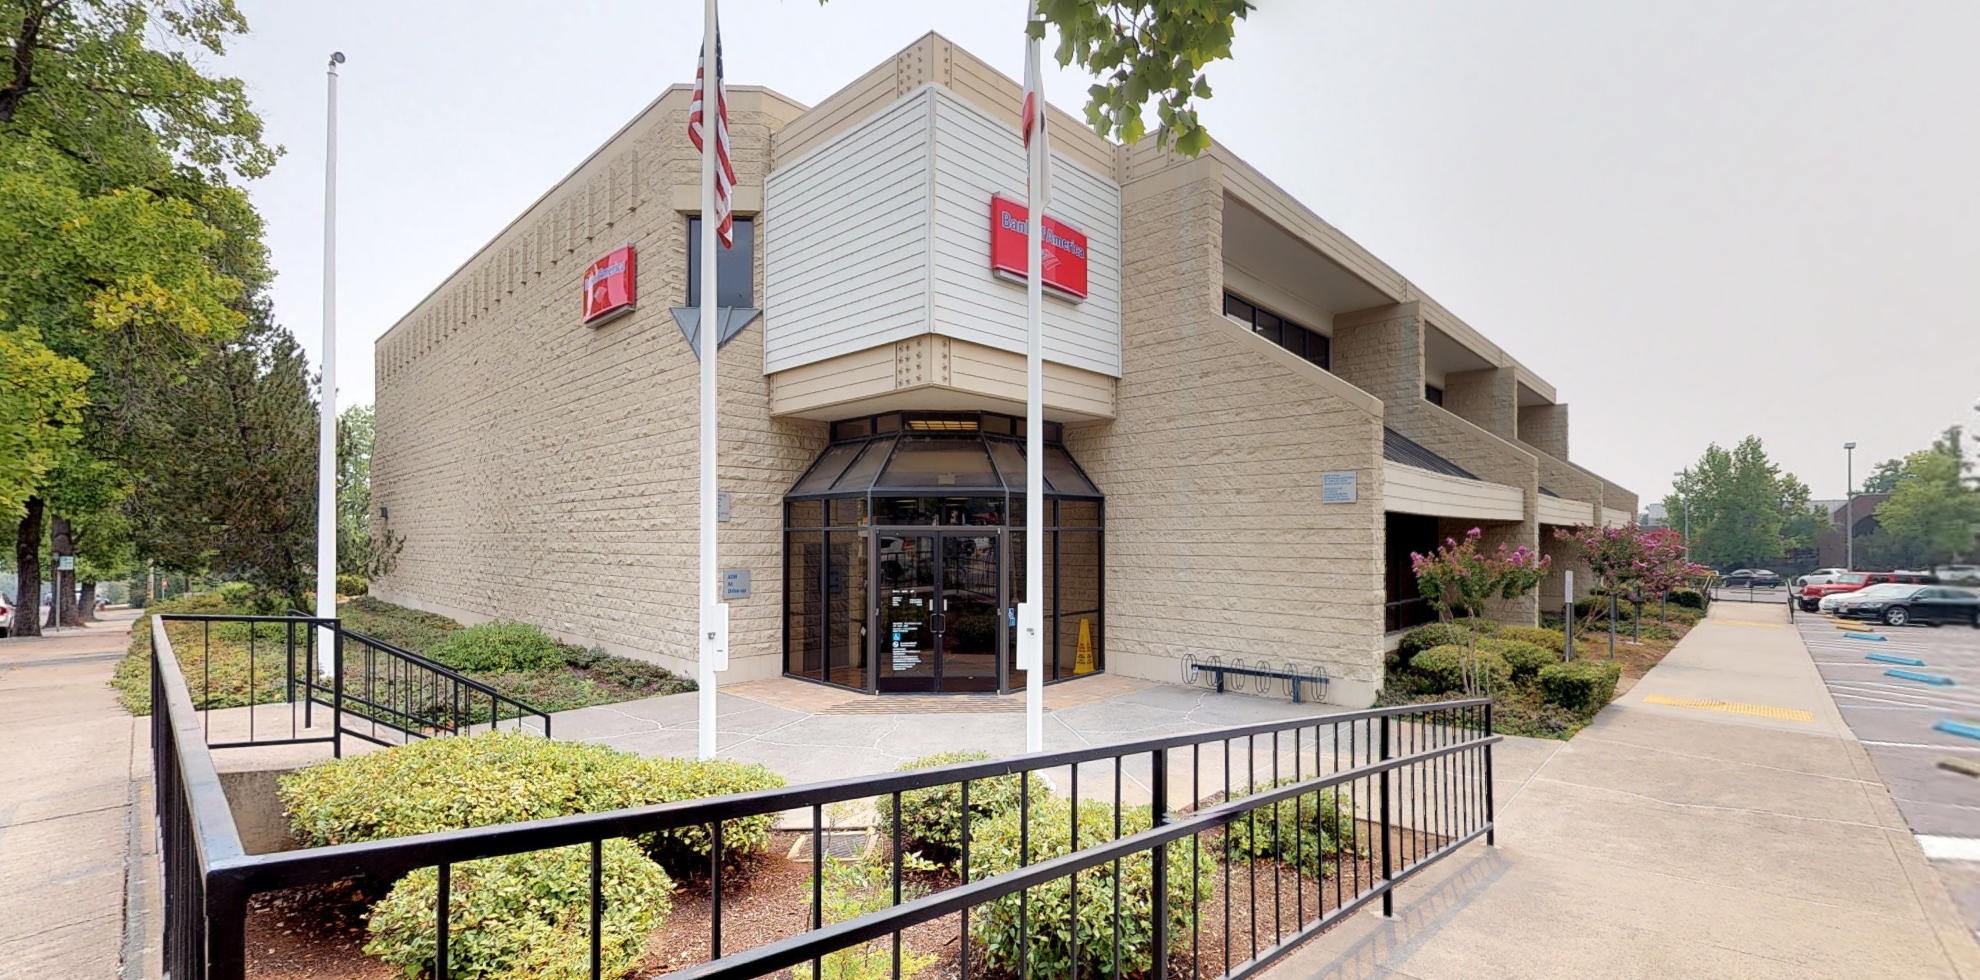 Bank of America financial center with drive-thru ATM   1661 East St, Redding, CA 96001